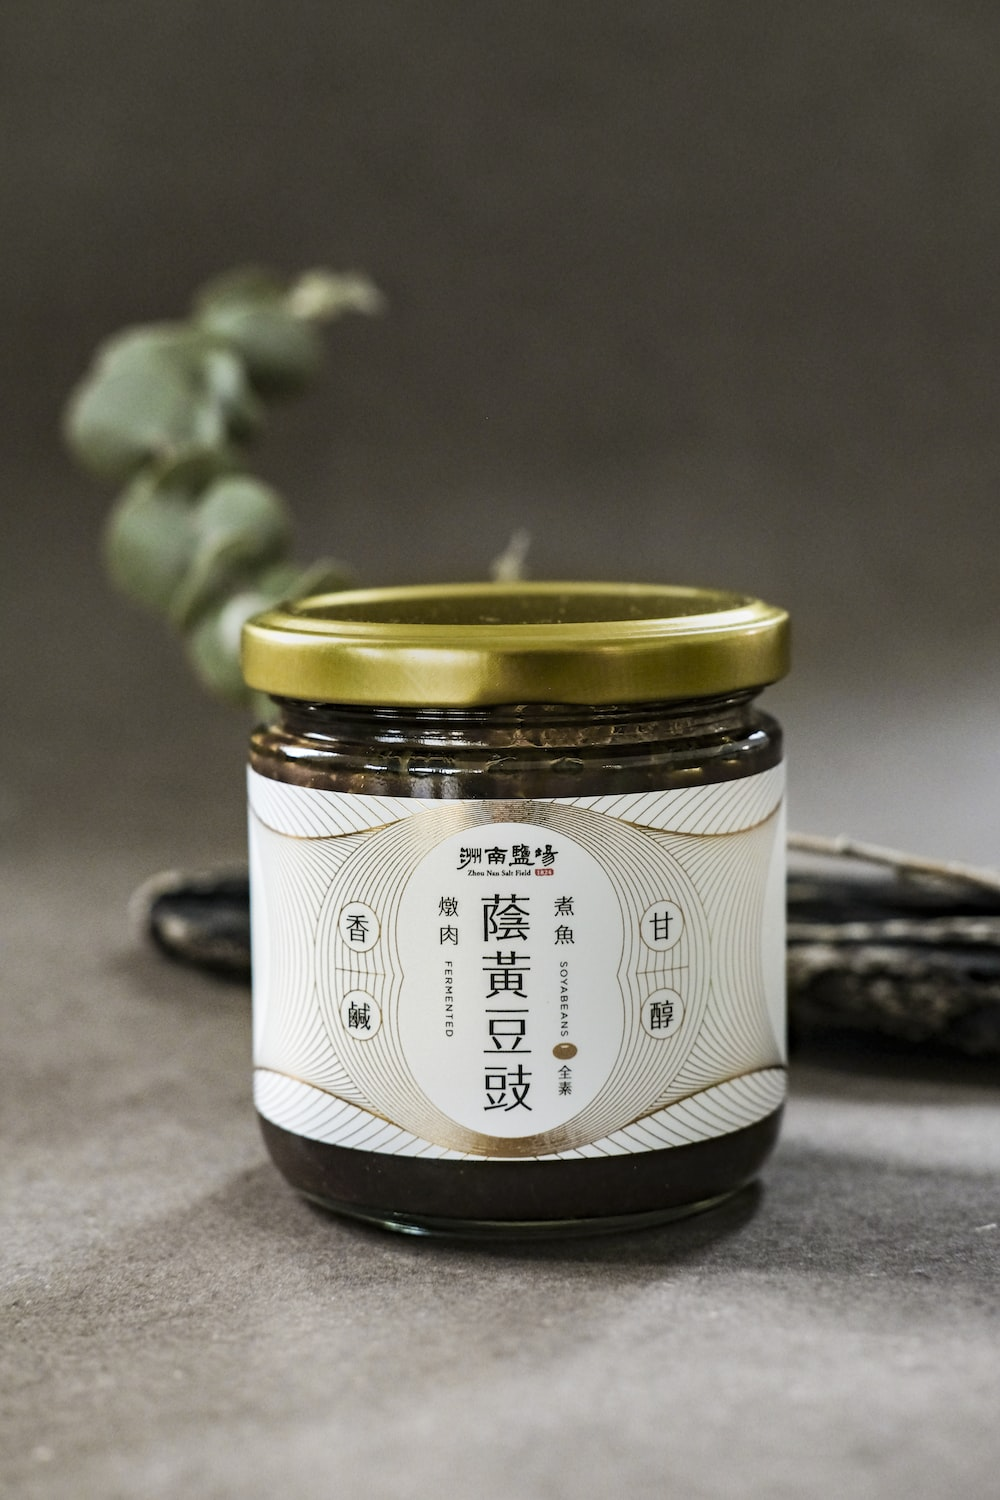 white and black labeled jar